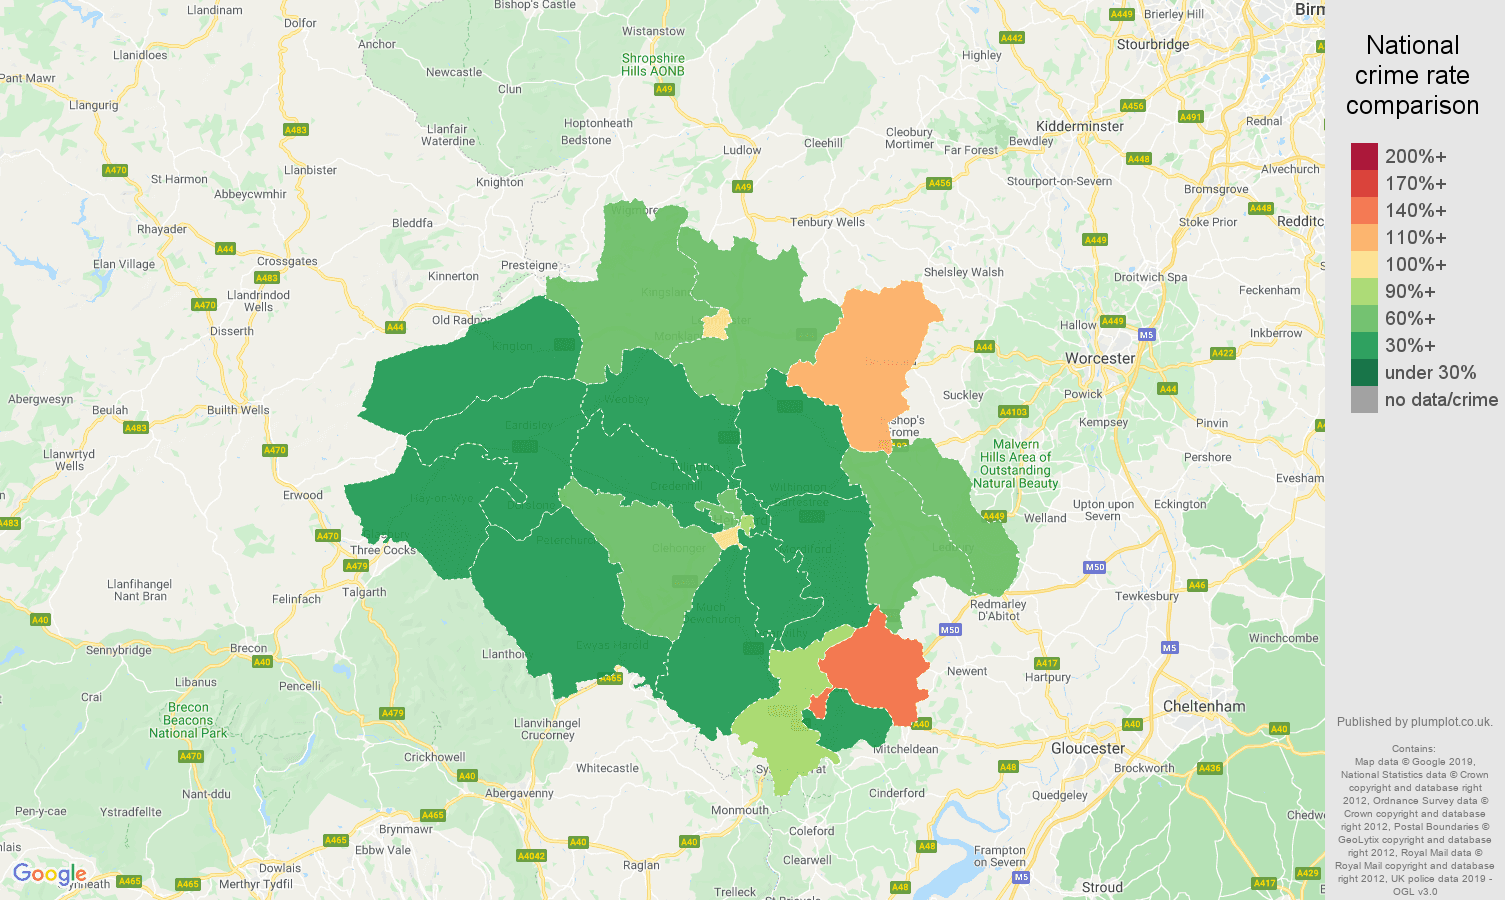 Hereford other theft crime rate comparison map